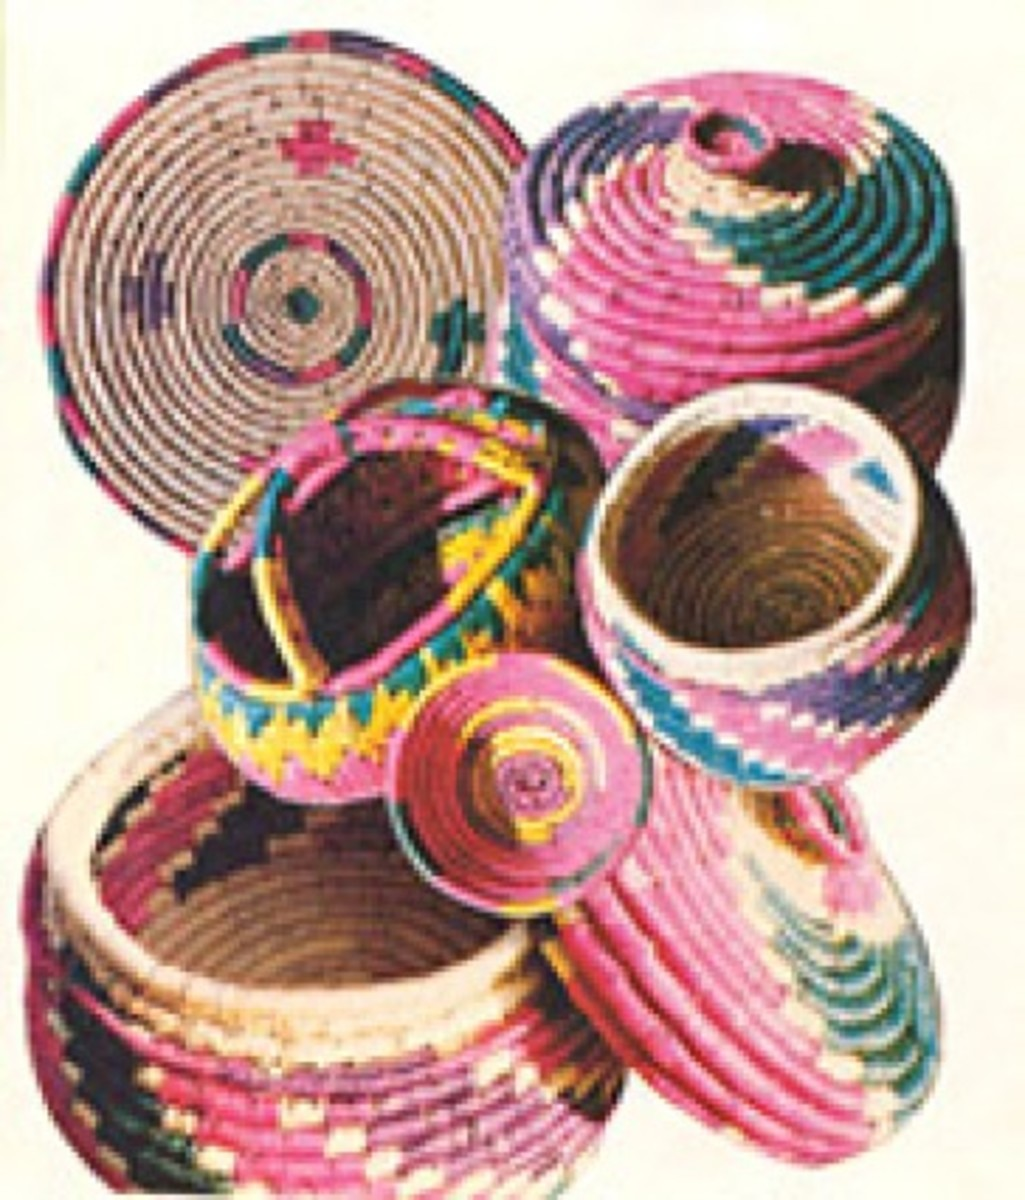 Basket Making in Chamba